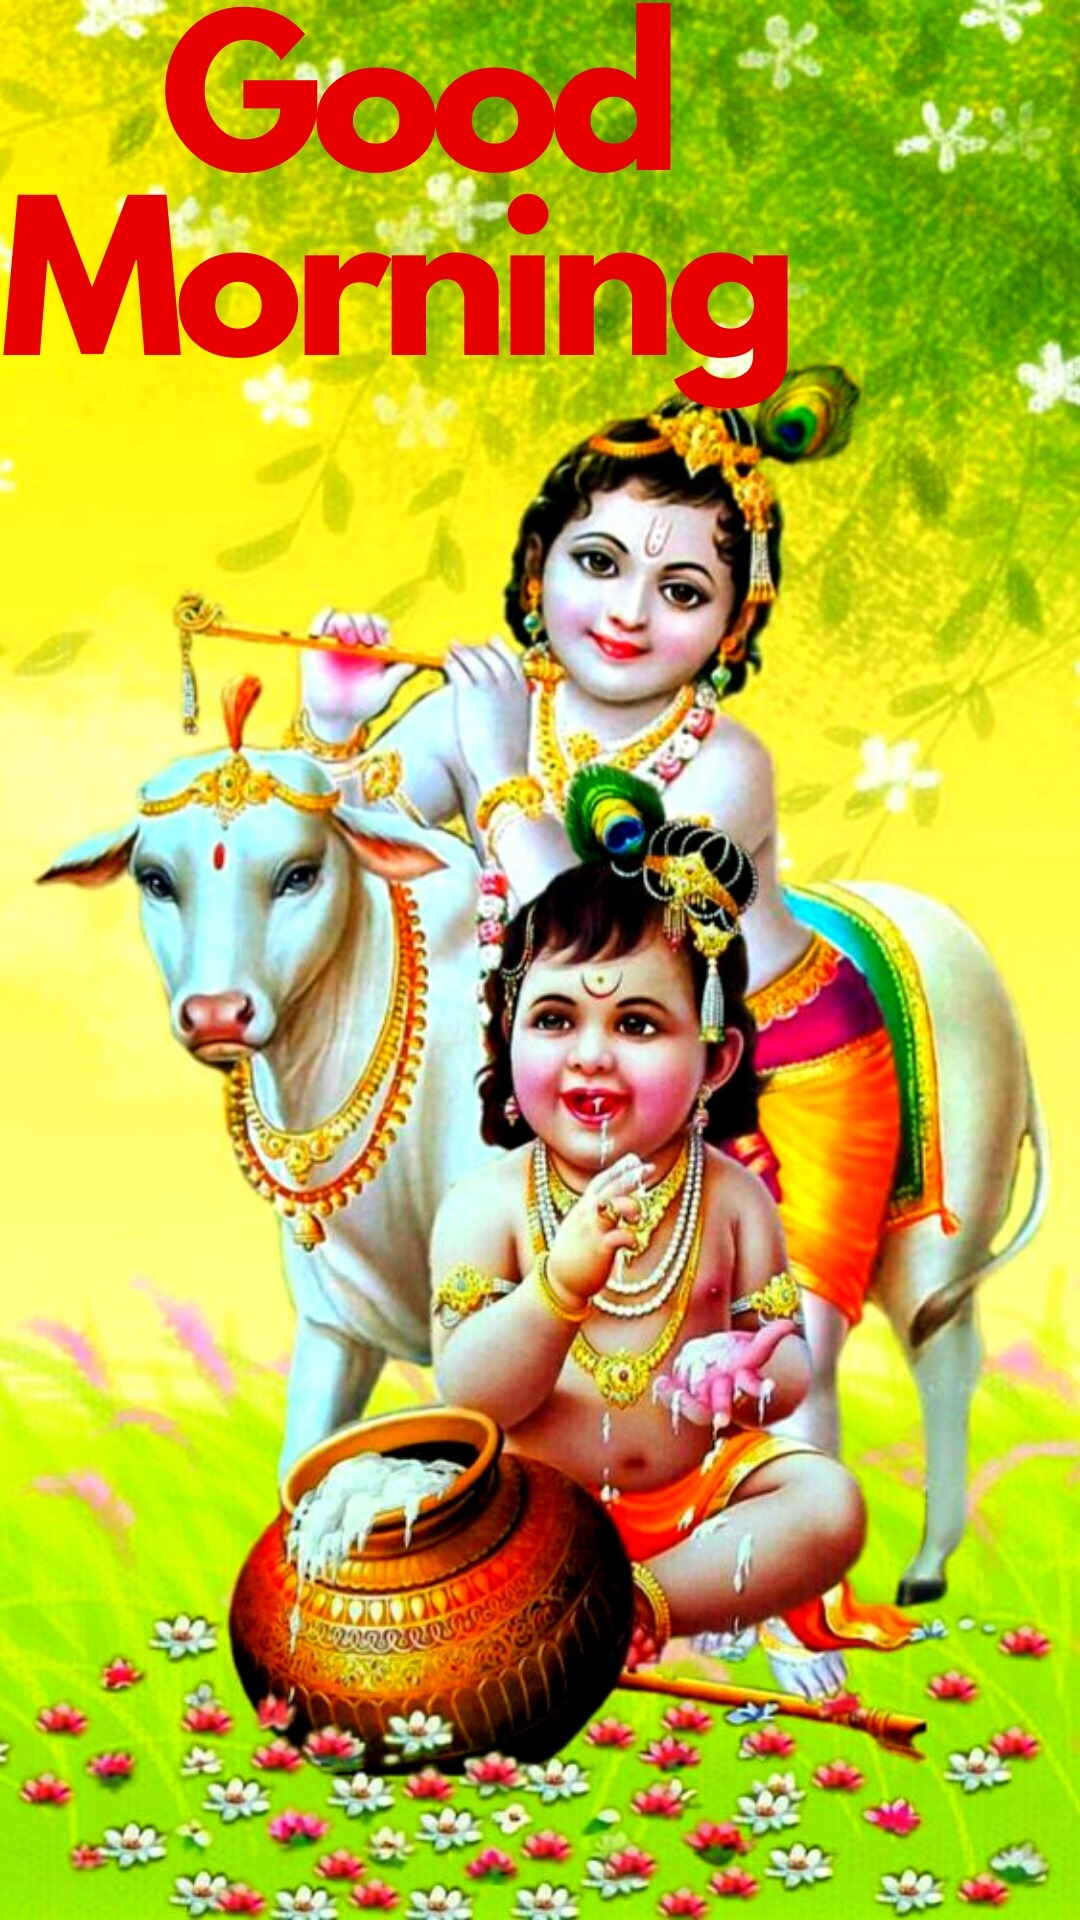 good morning images with lord krishna